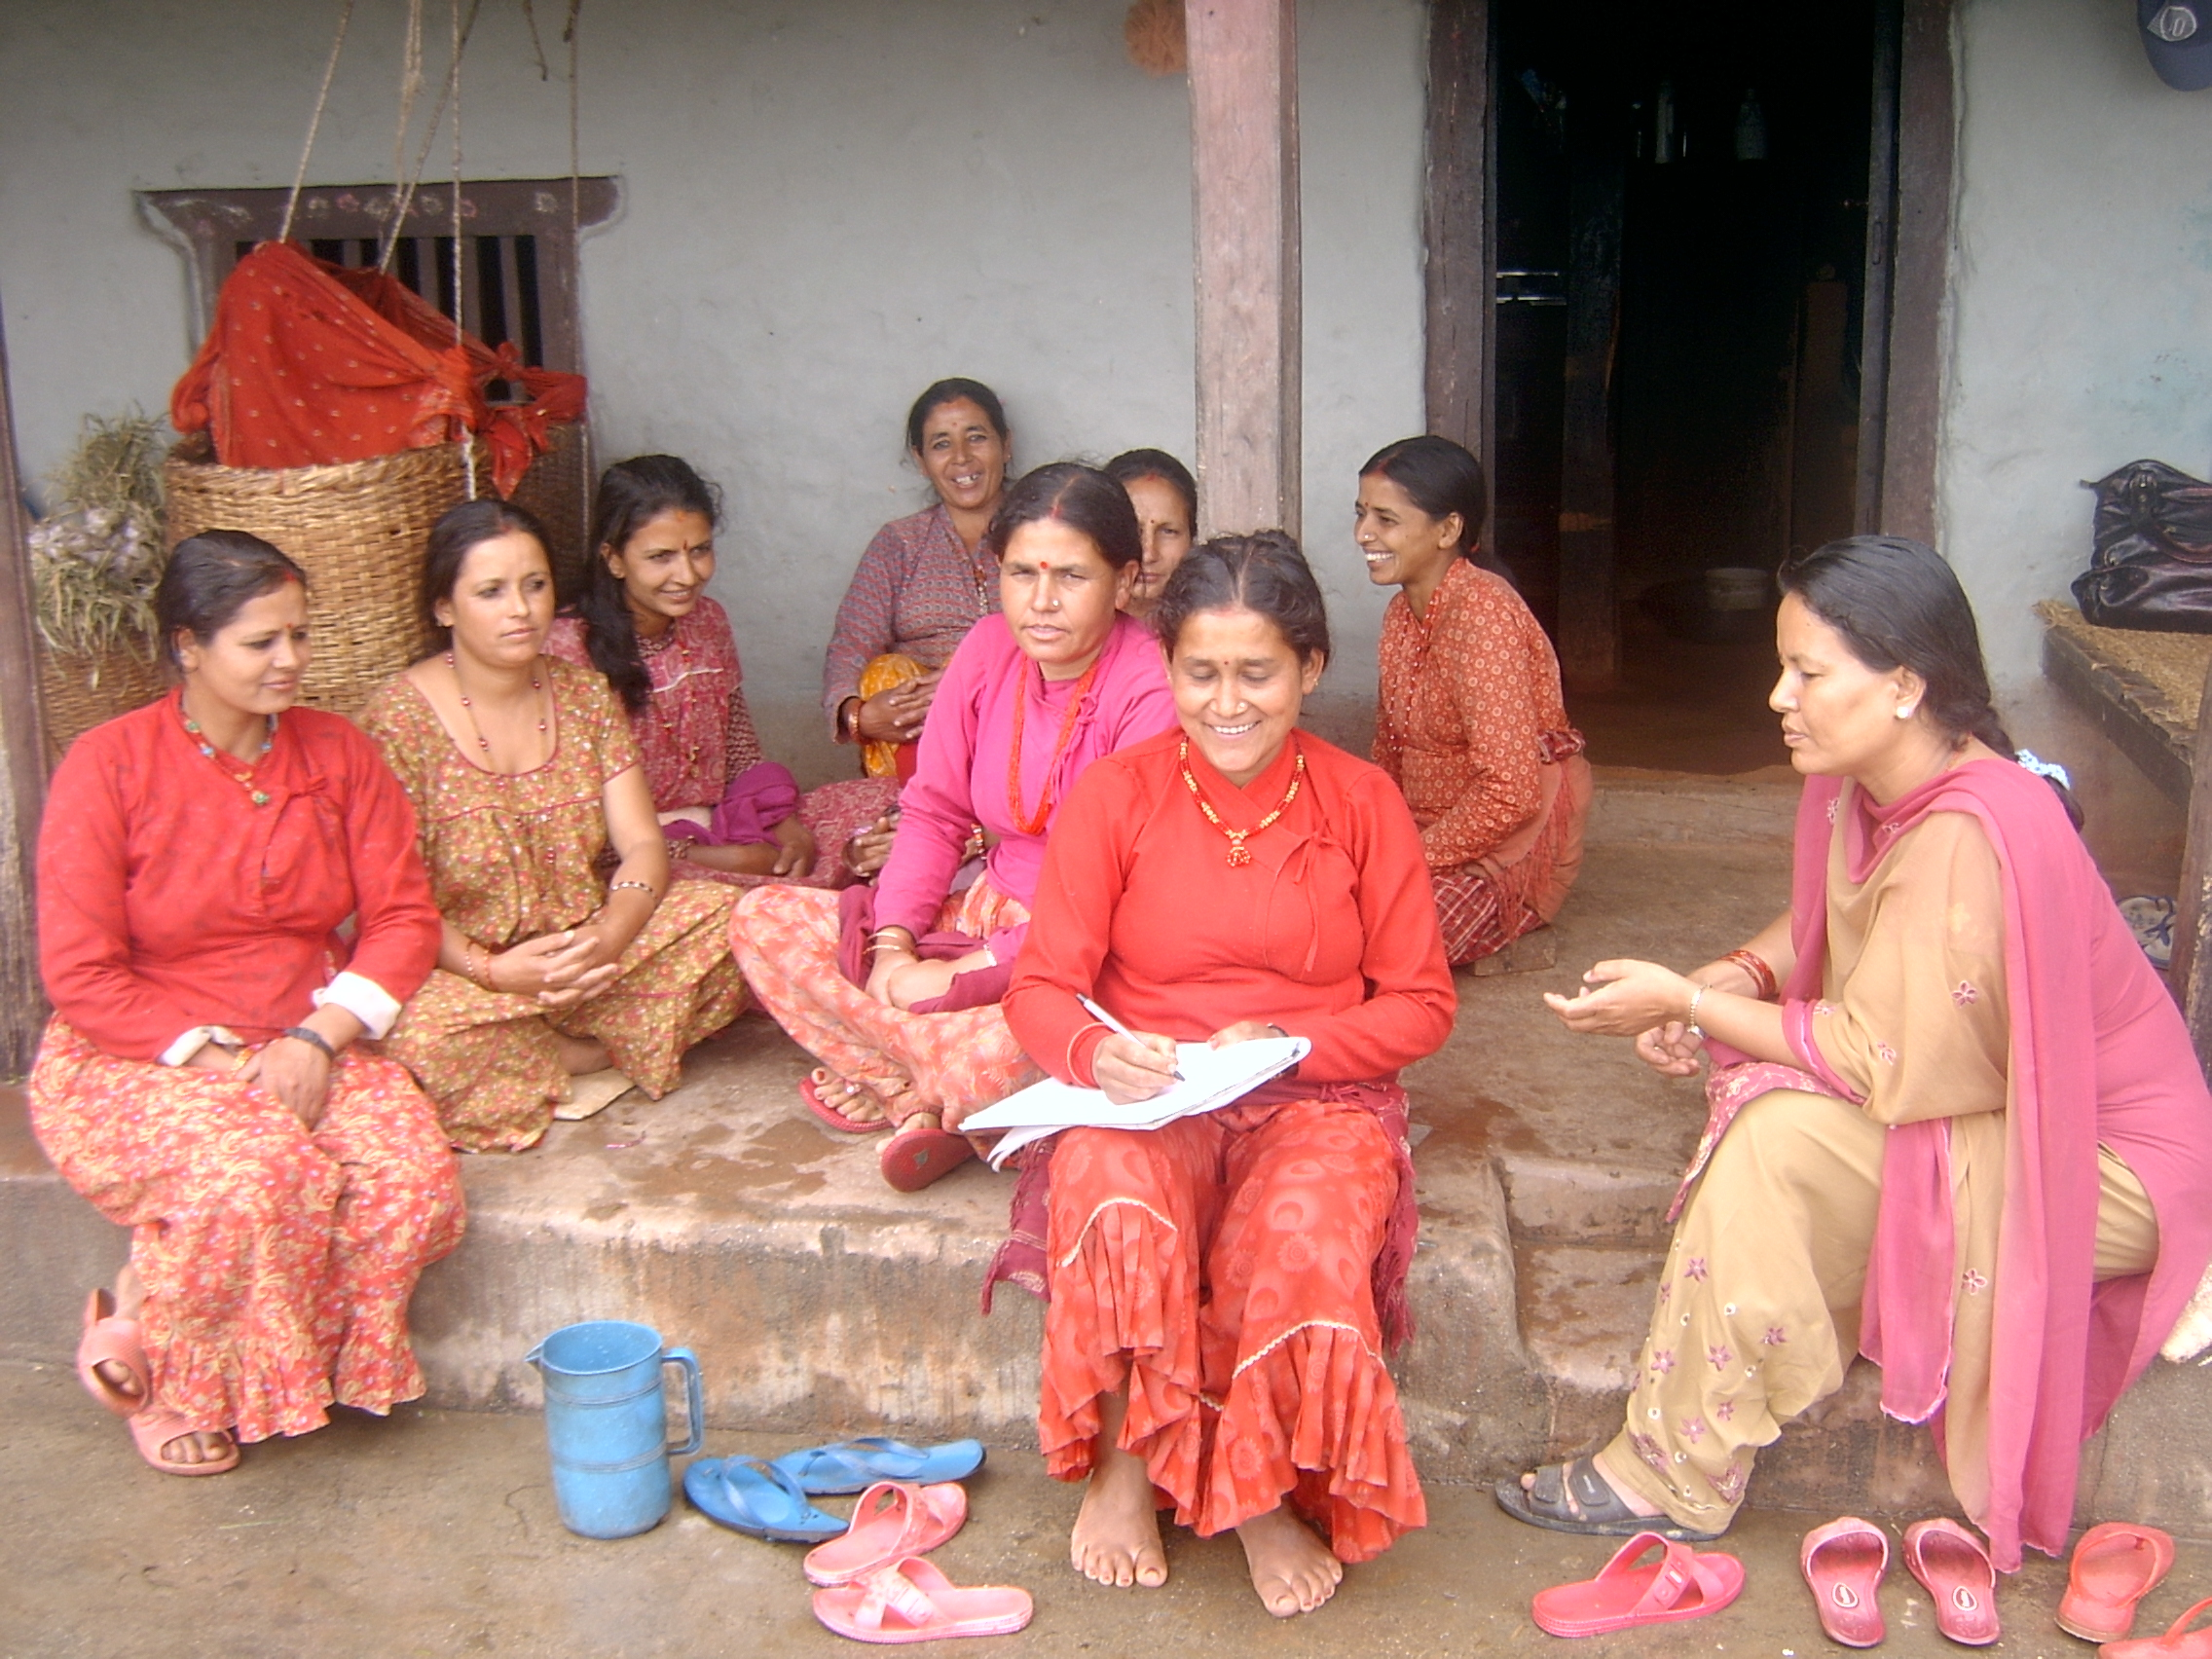 Women S Empowerment Project Avso Org